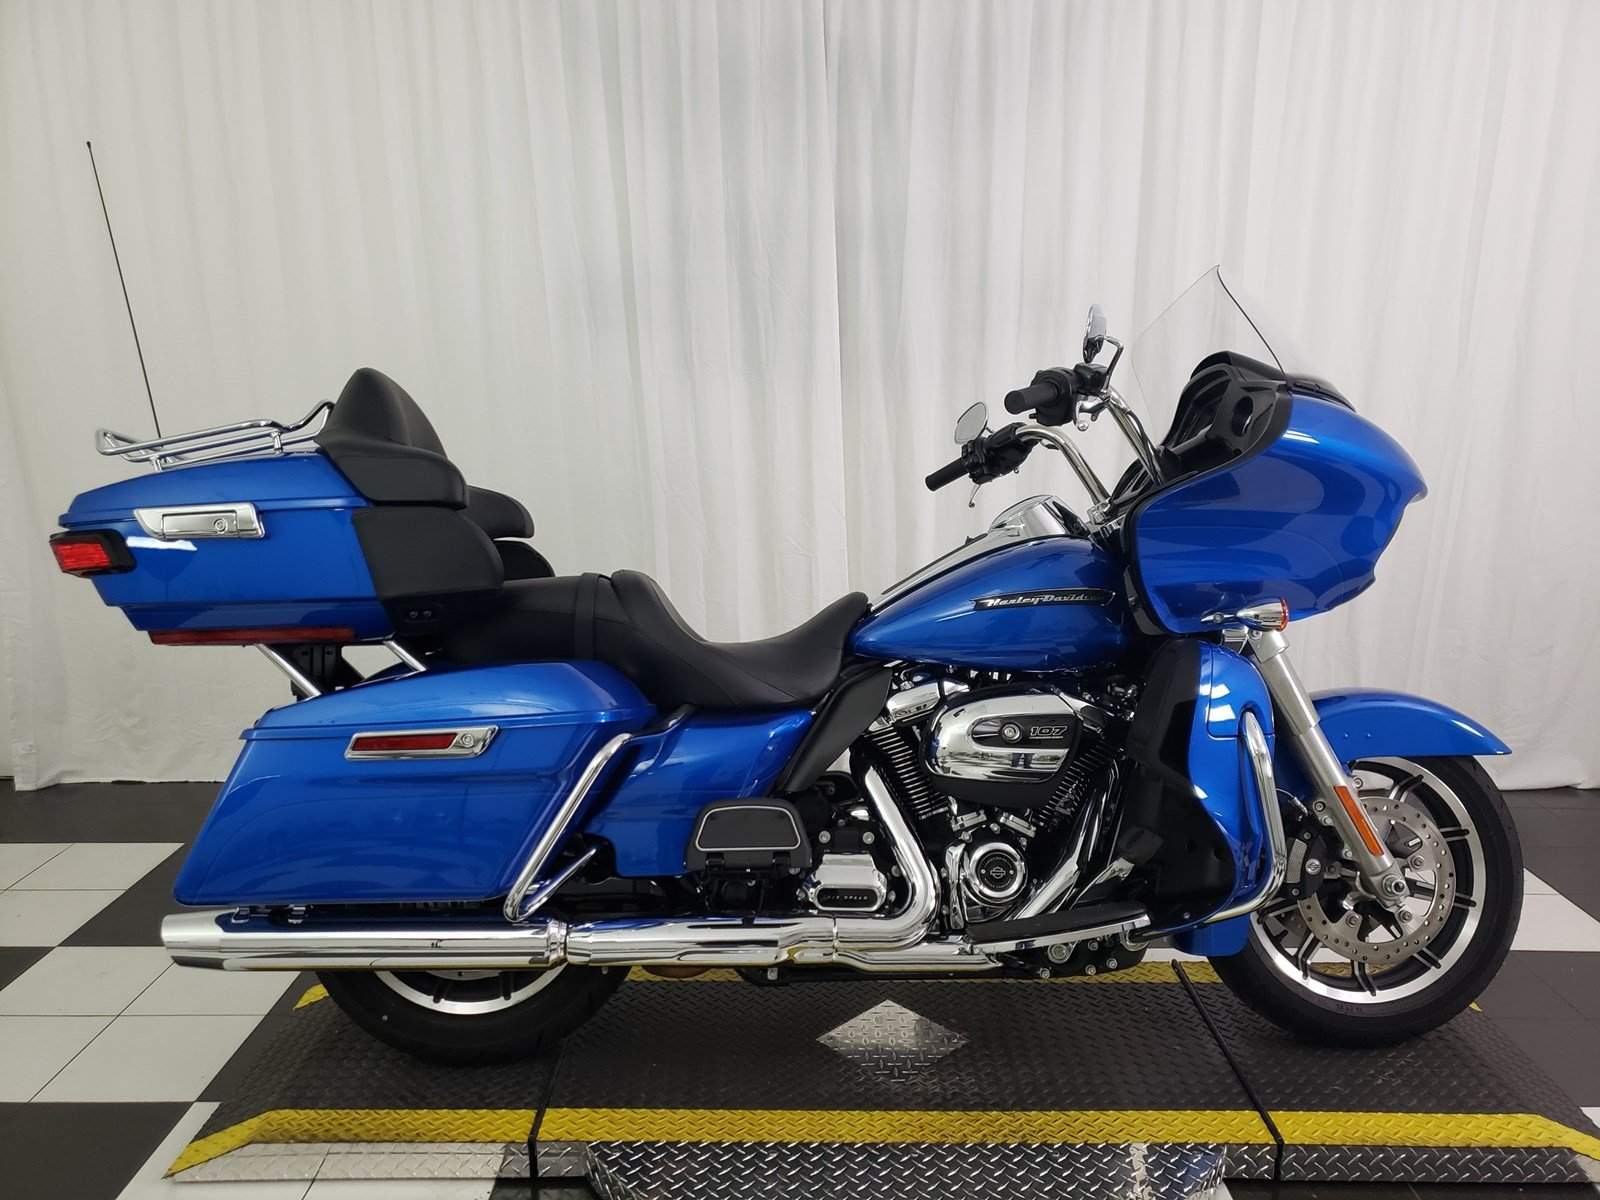 Pre-Owned 2018 Harley-Davidson Road Glide Ultra FLTRU